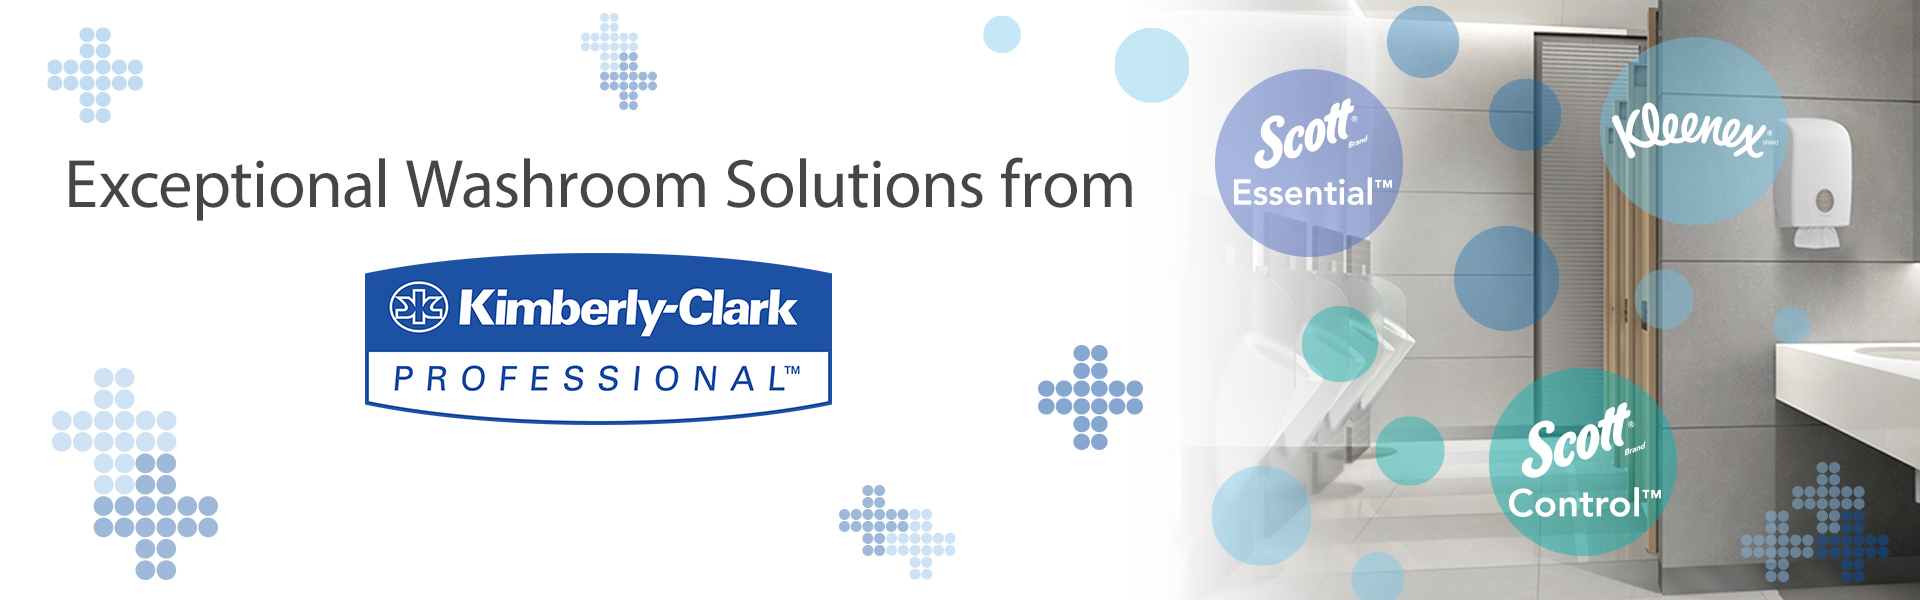 Kimberly-Clark Professional Banner